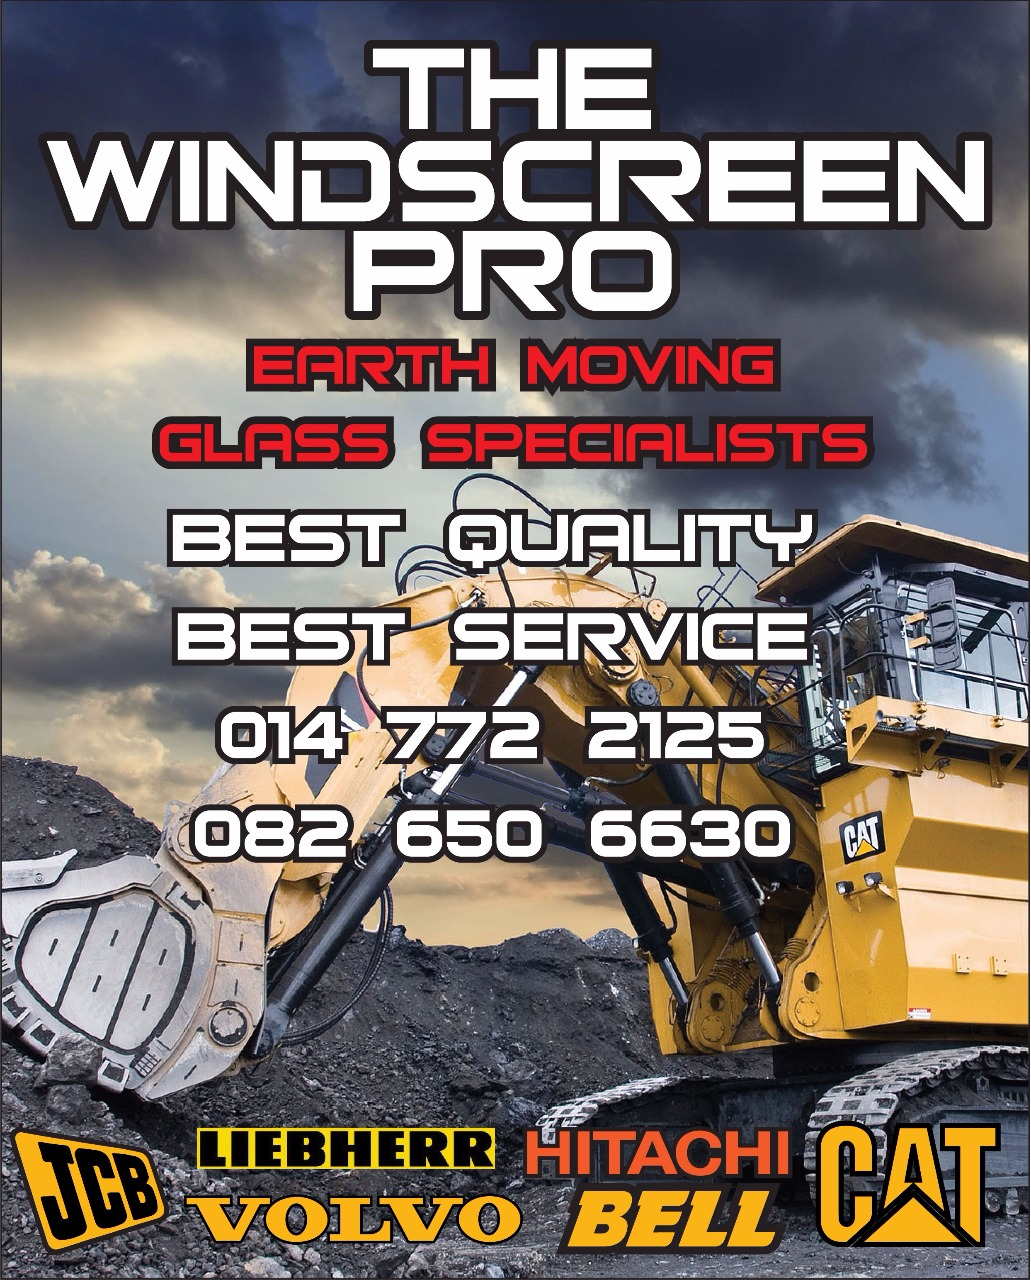 Earthmoving Glass Specialists – The Windscreen PROfessionals